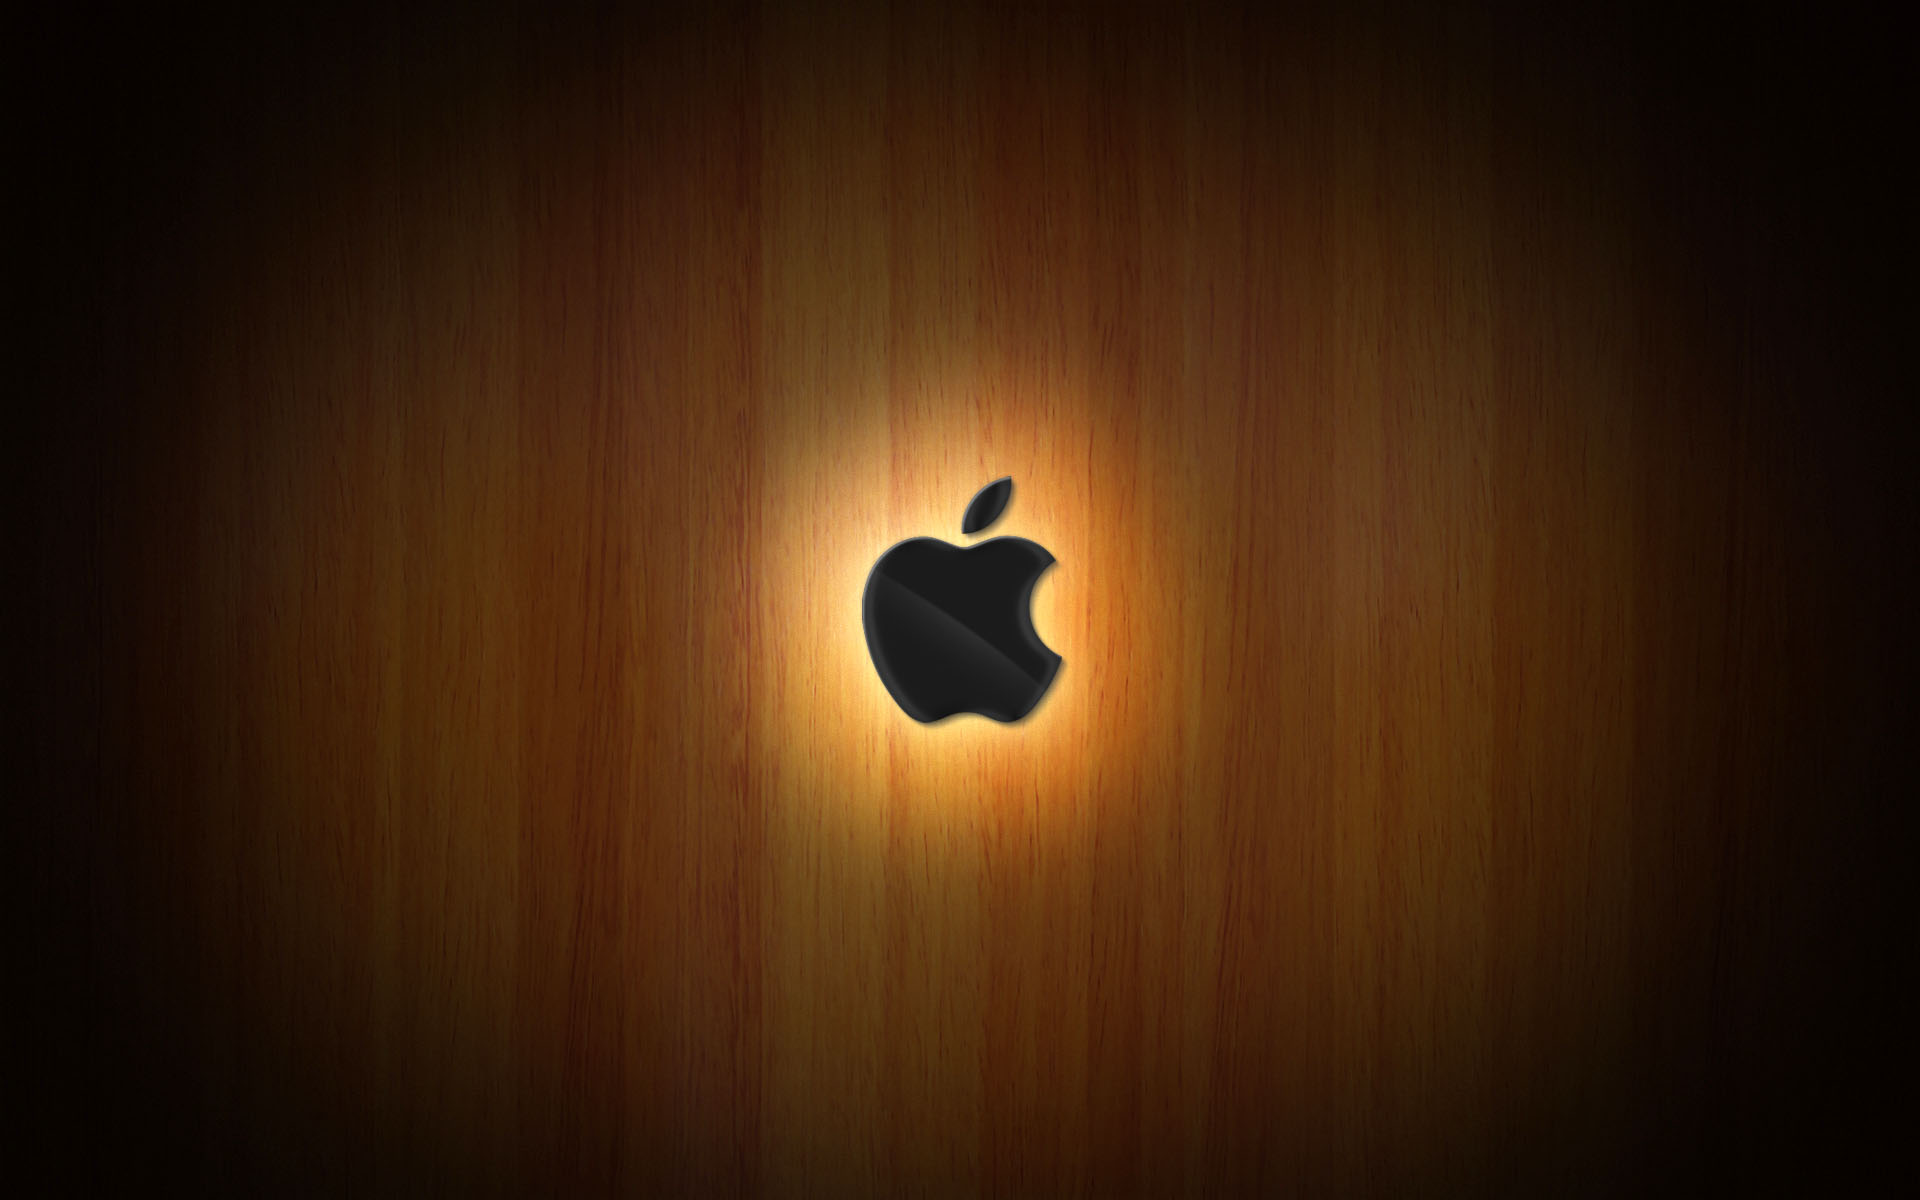 Wooden Glow of Apple 426.56 Kb